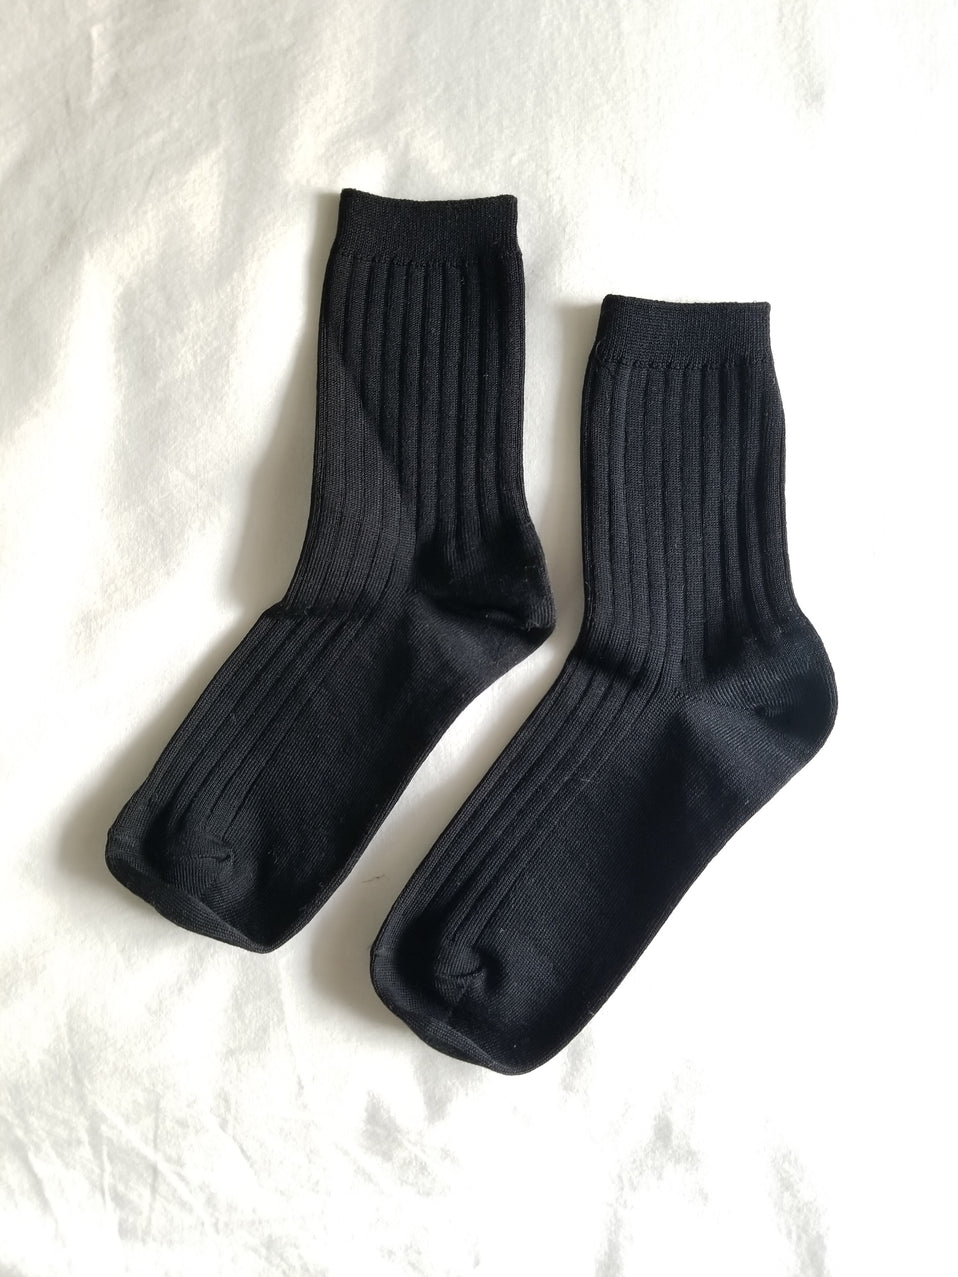 The Mercerized Cotton Socks in True Black